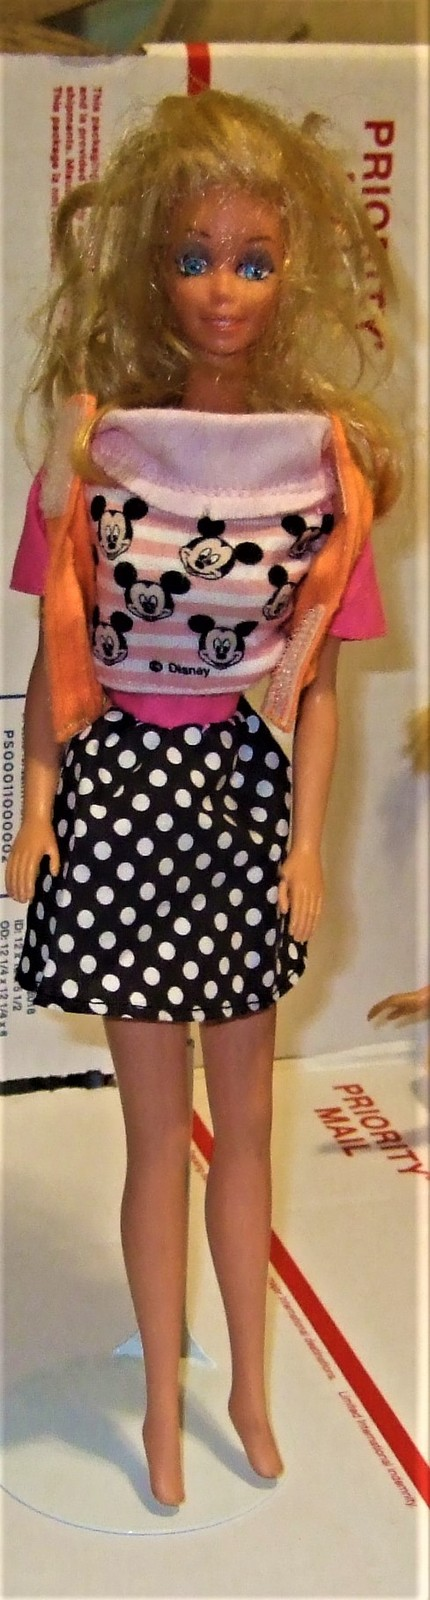 Primary image for Barbie Doll - Mickey Mouse outfit